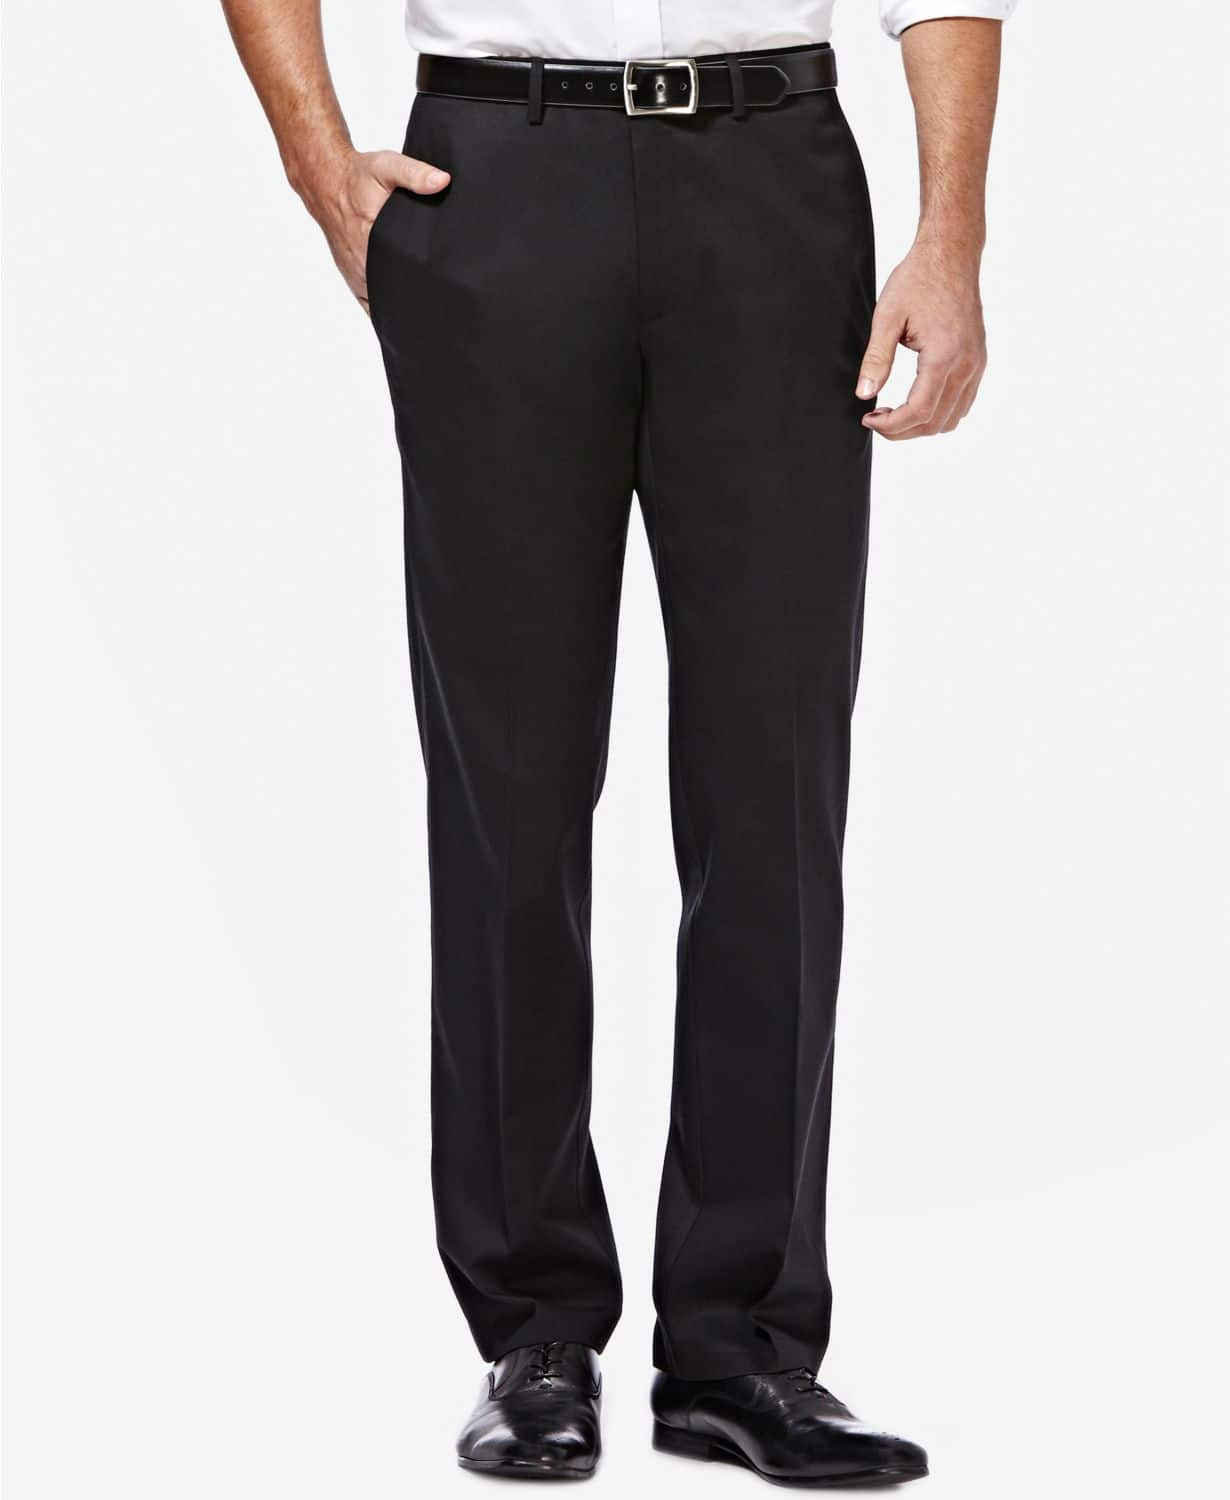 Haggar Men's Premium Straight-Fit Non-Iron Stretch Flat-Front Pants and Various Other Haggar Dress and Casual Pants - $19.99 at Macys. FREE Shipping